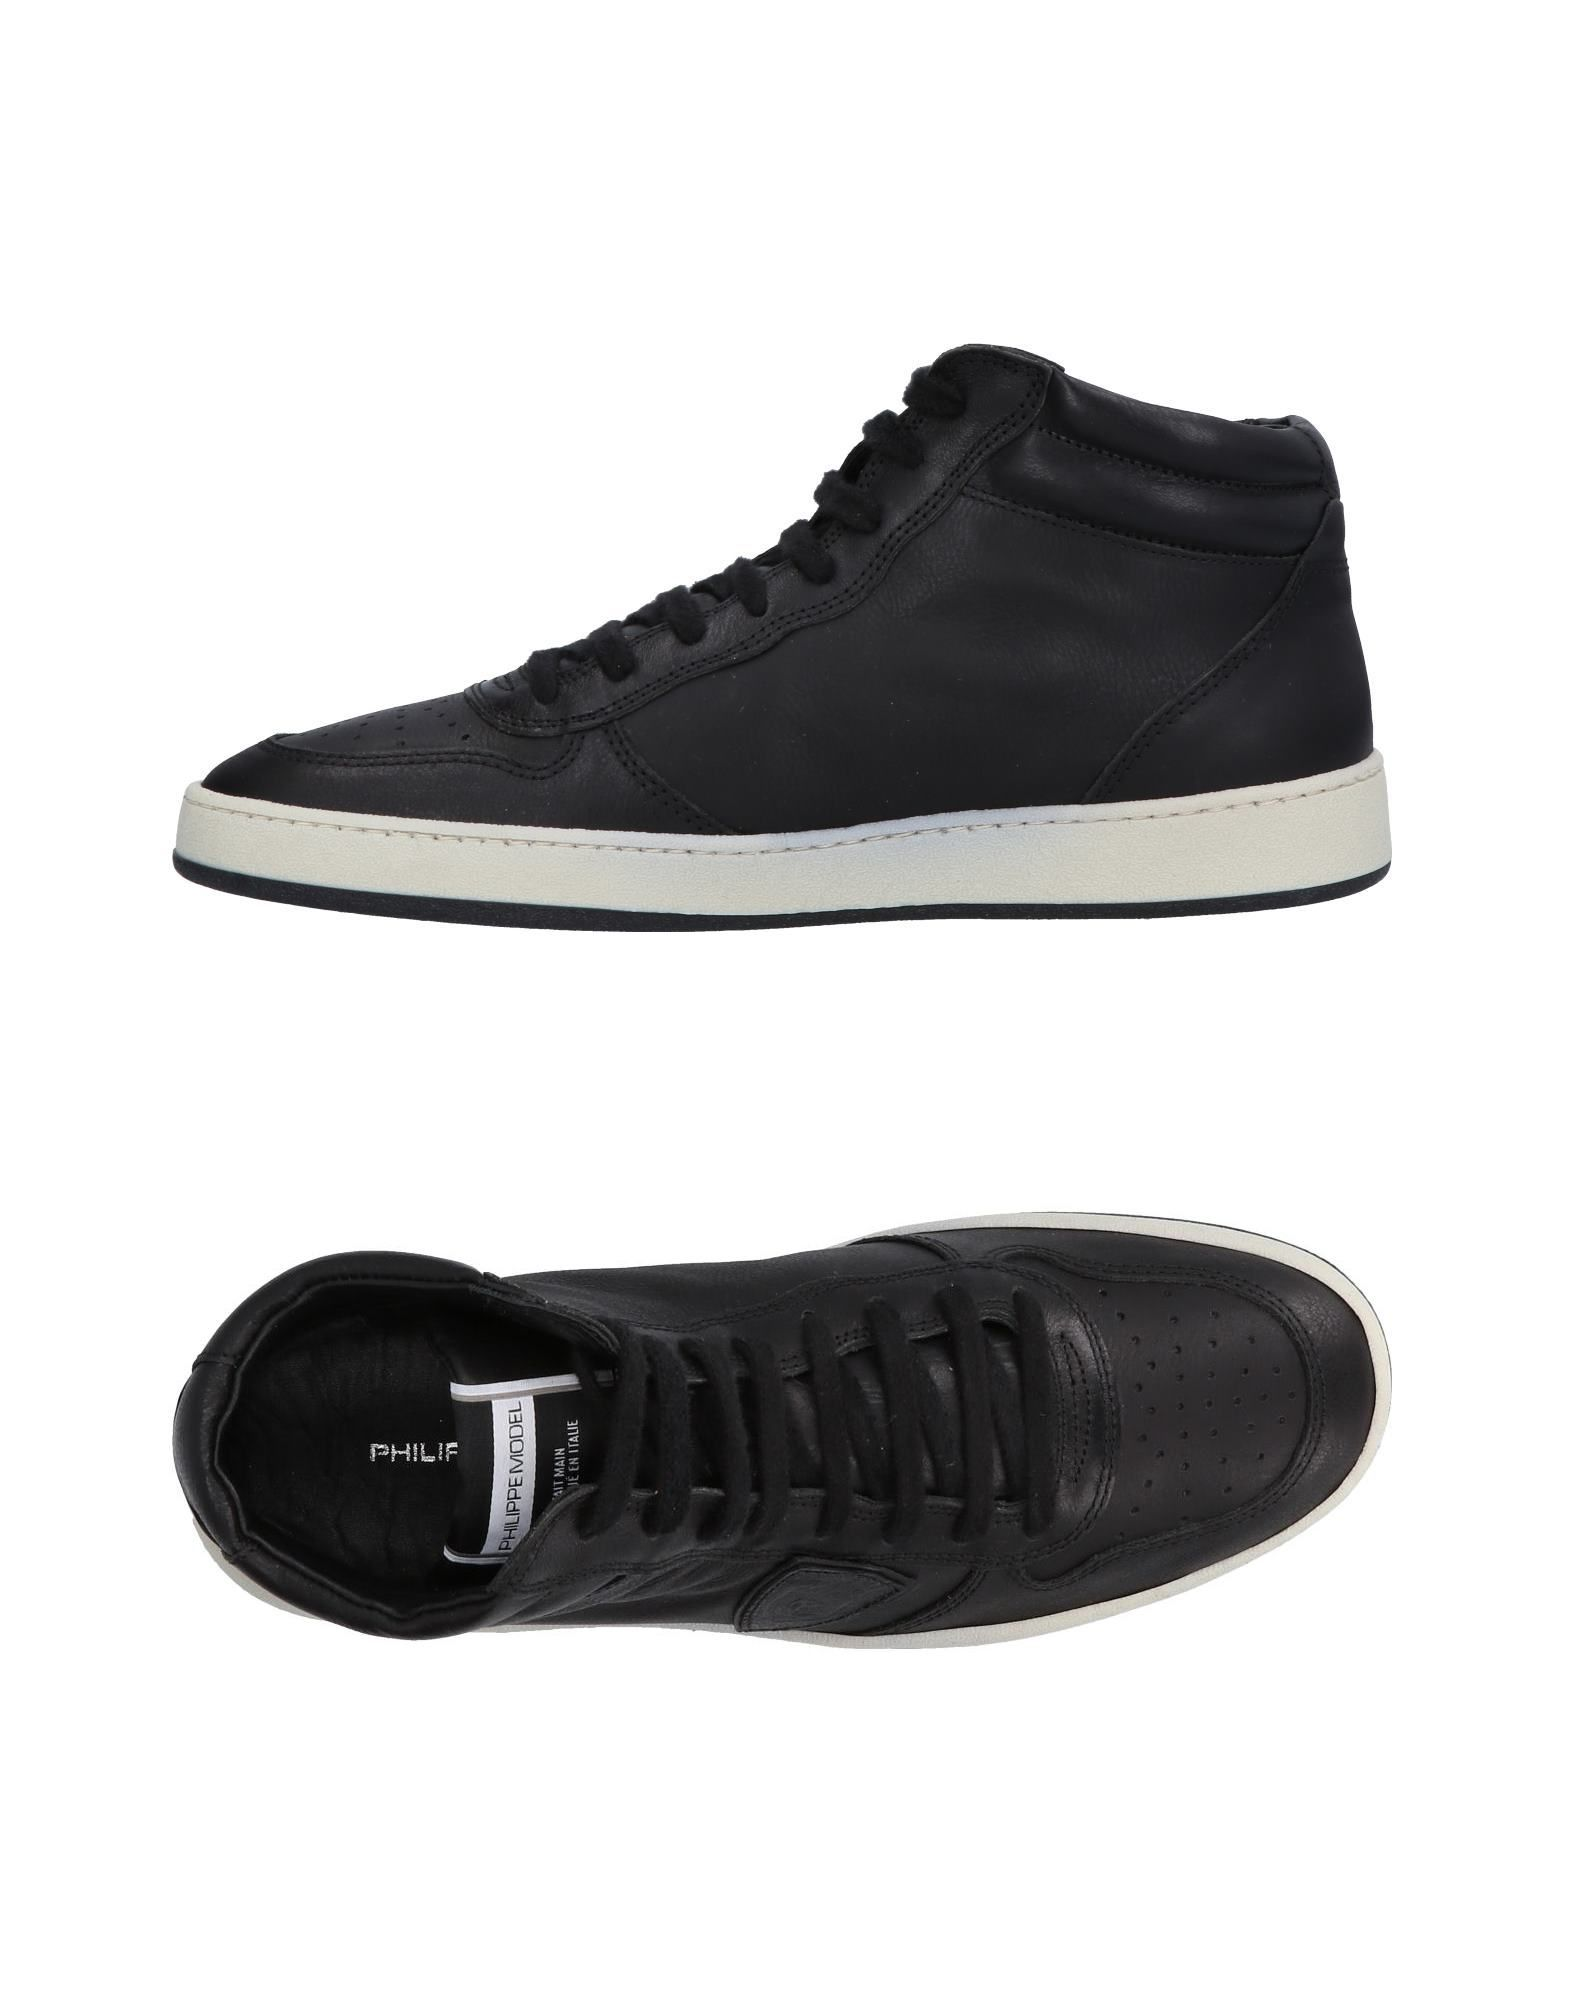 Sneakers Philippe Model Homme - Sneakers Philippe Model  Blanc Chaussures femme pas cher homme et femme